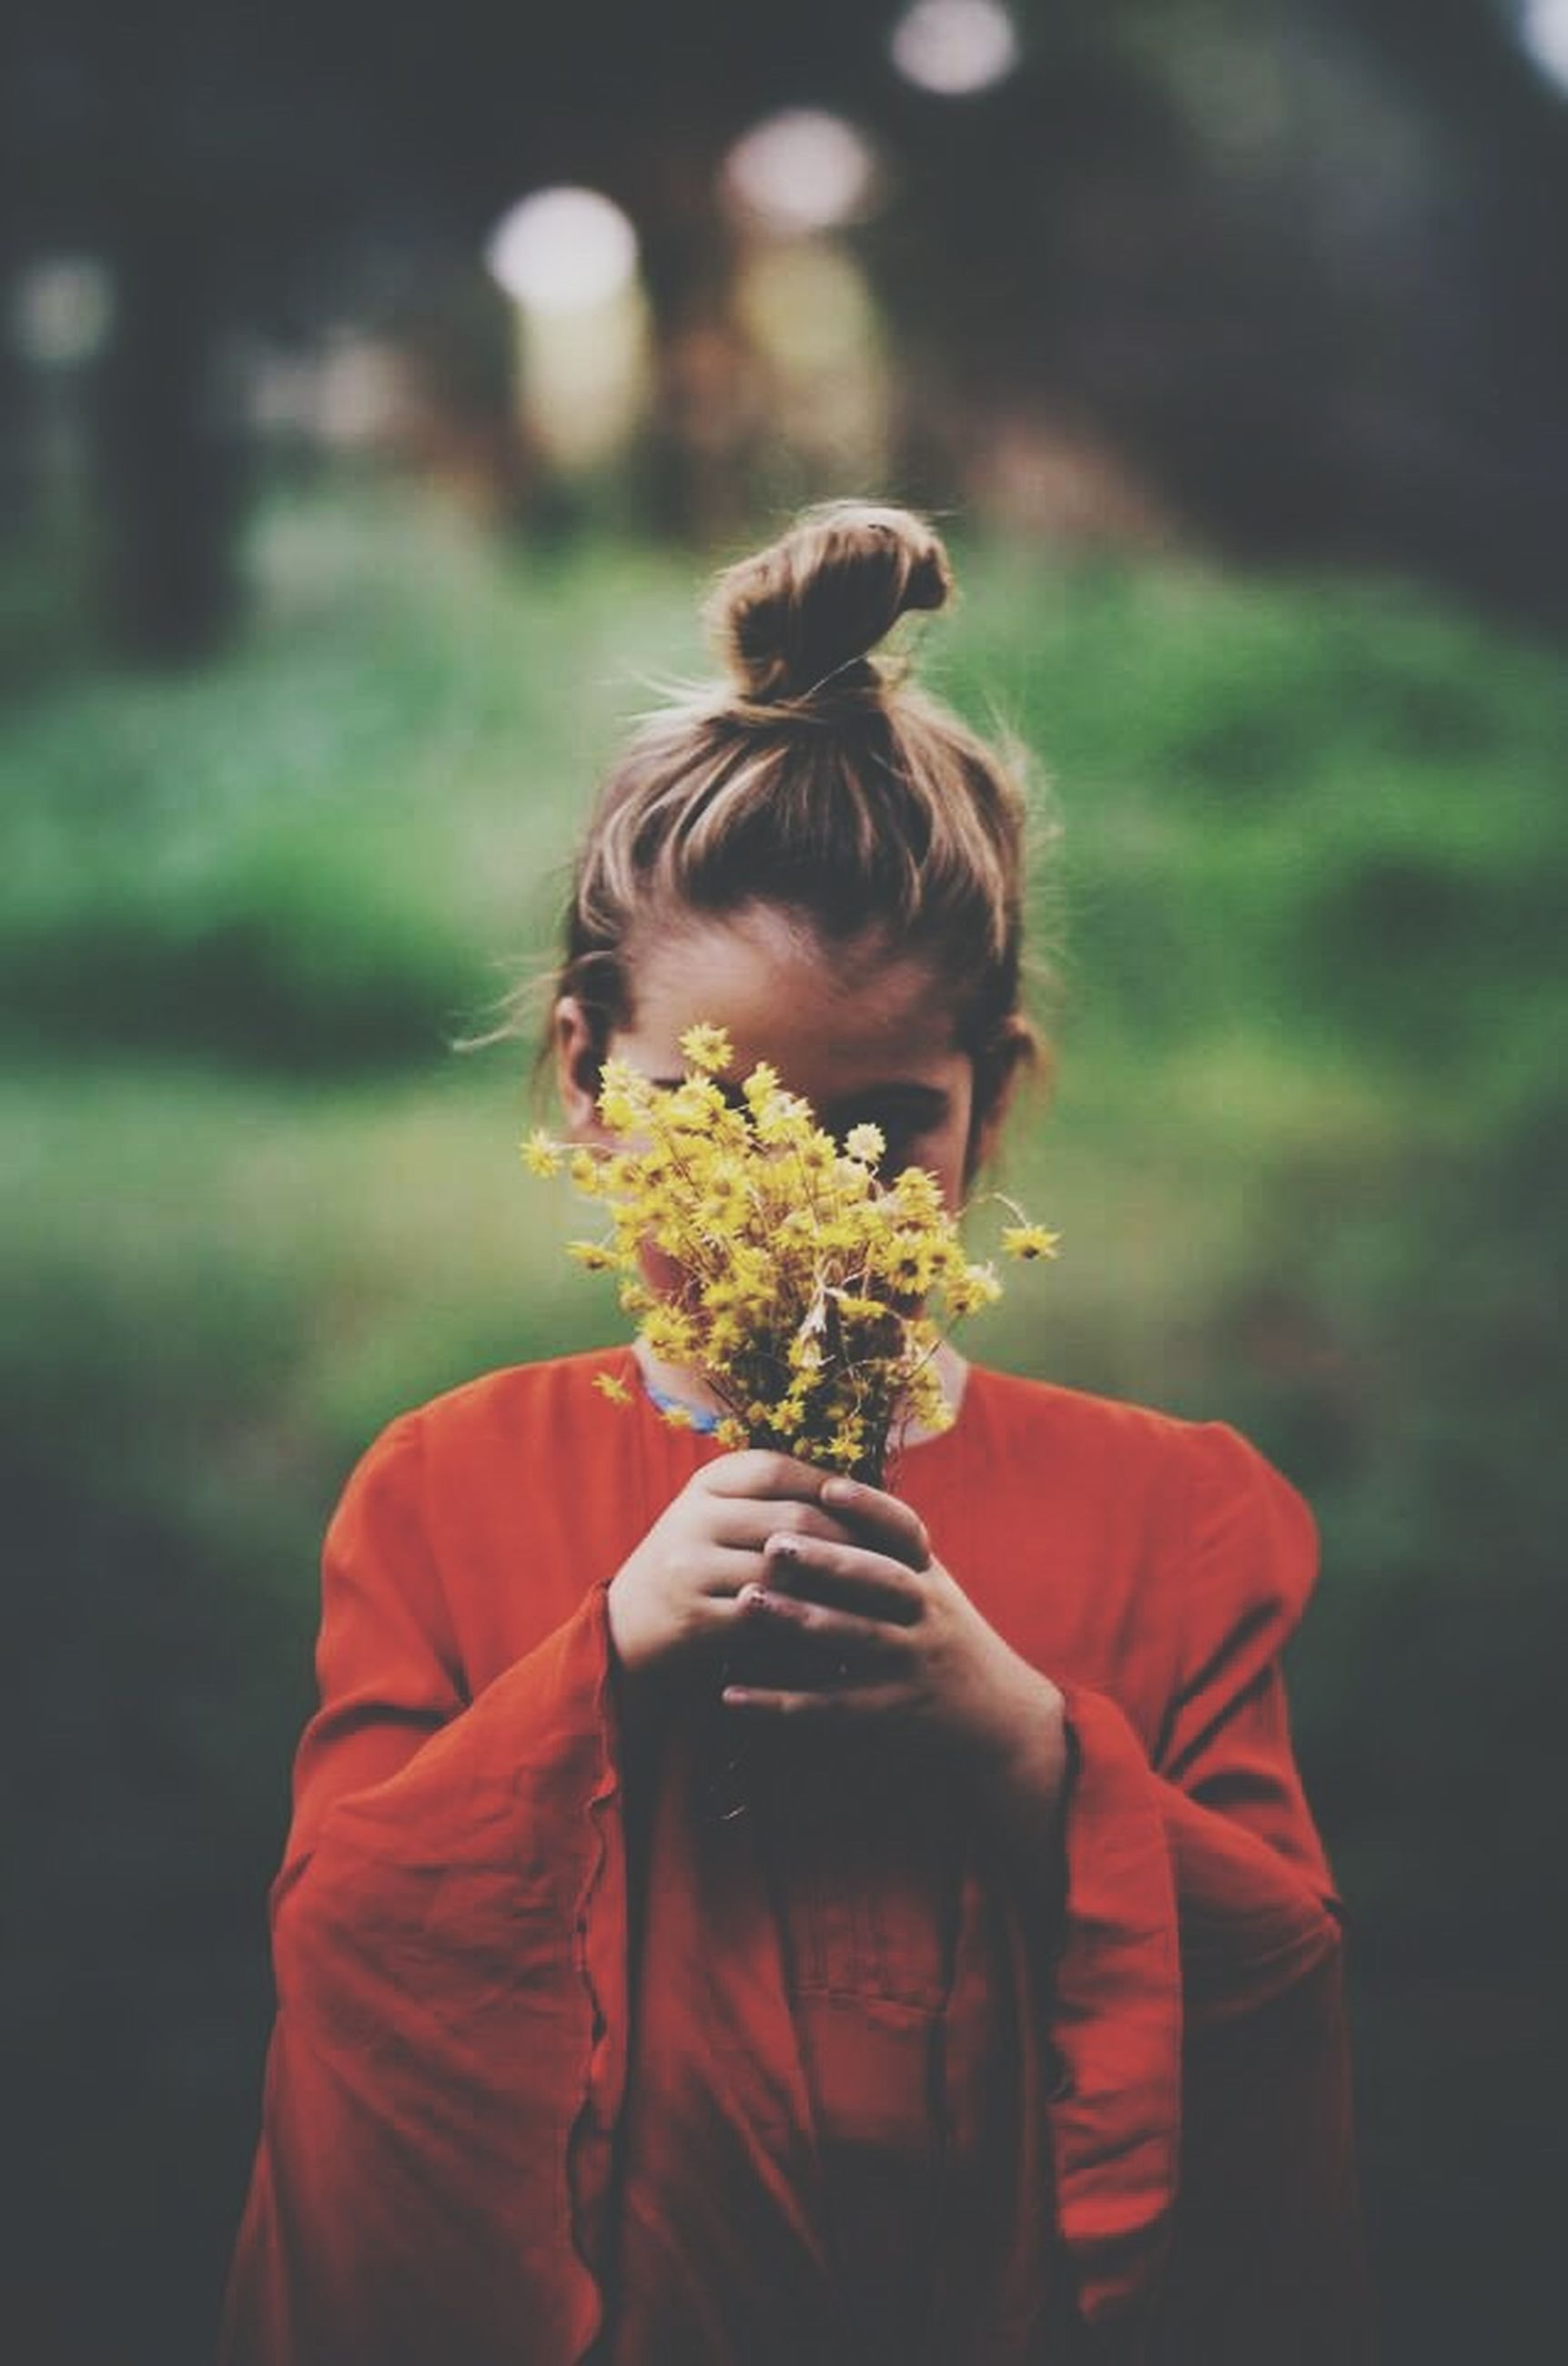 rear view, focus on foreground, lifestyles, flower, leisure activity, casual clothing, waist up, girls, person, holding, long hair, standing, childhood, elementary age, blond hair, fragility, three quarter length, headshot